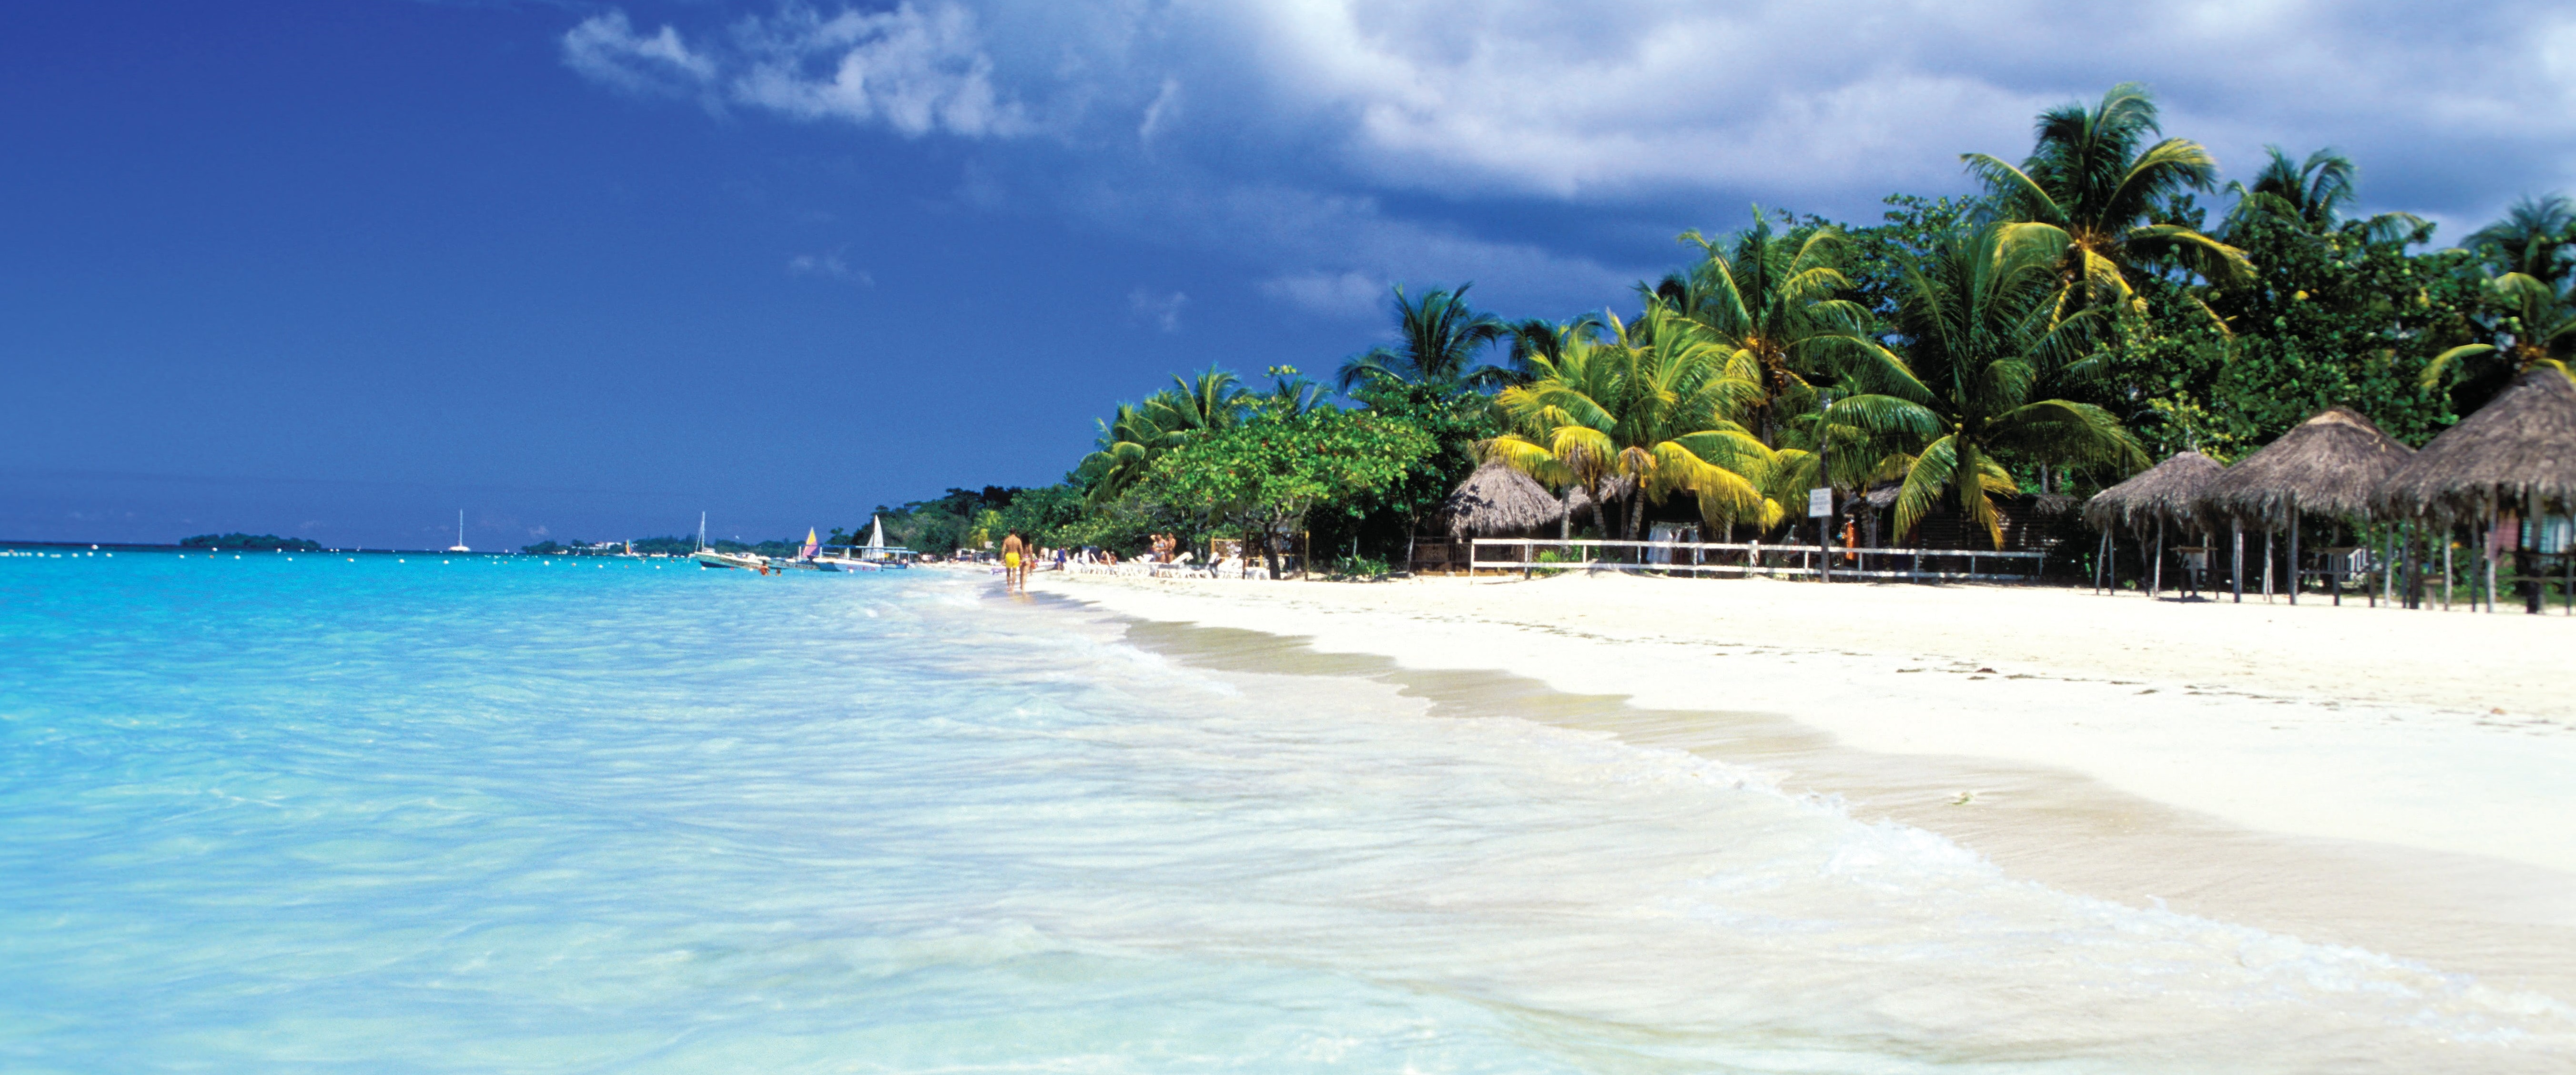 The Ultimate Trip To Jamaica Experience Transat